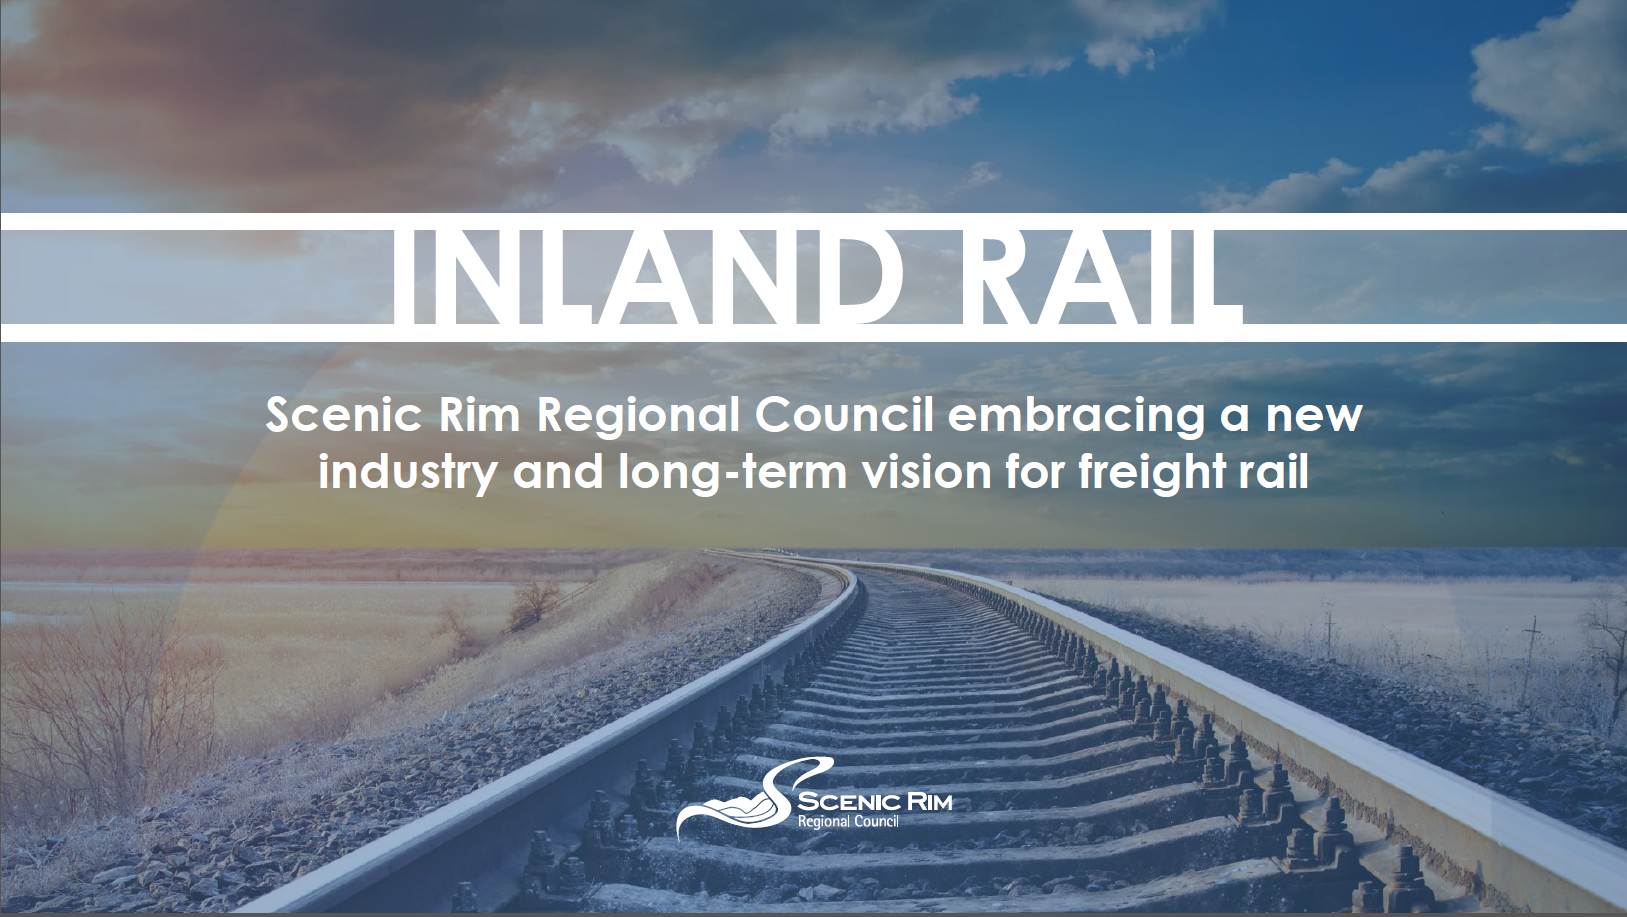 Scenic Rim Regional Council Embracing a New industry and Long-Term Vision for Freight Rail